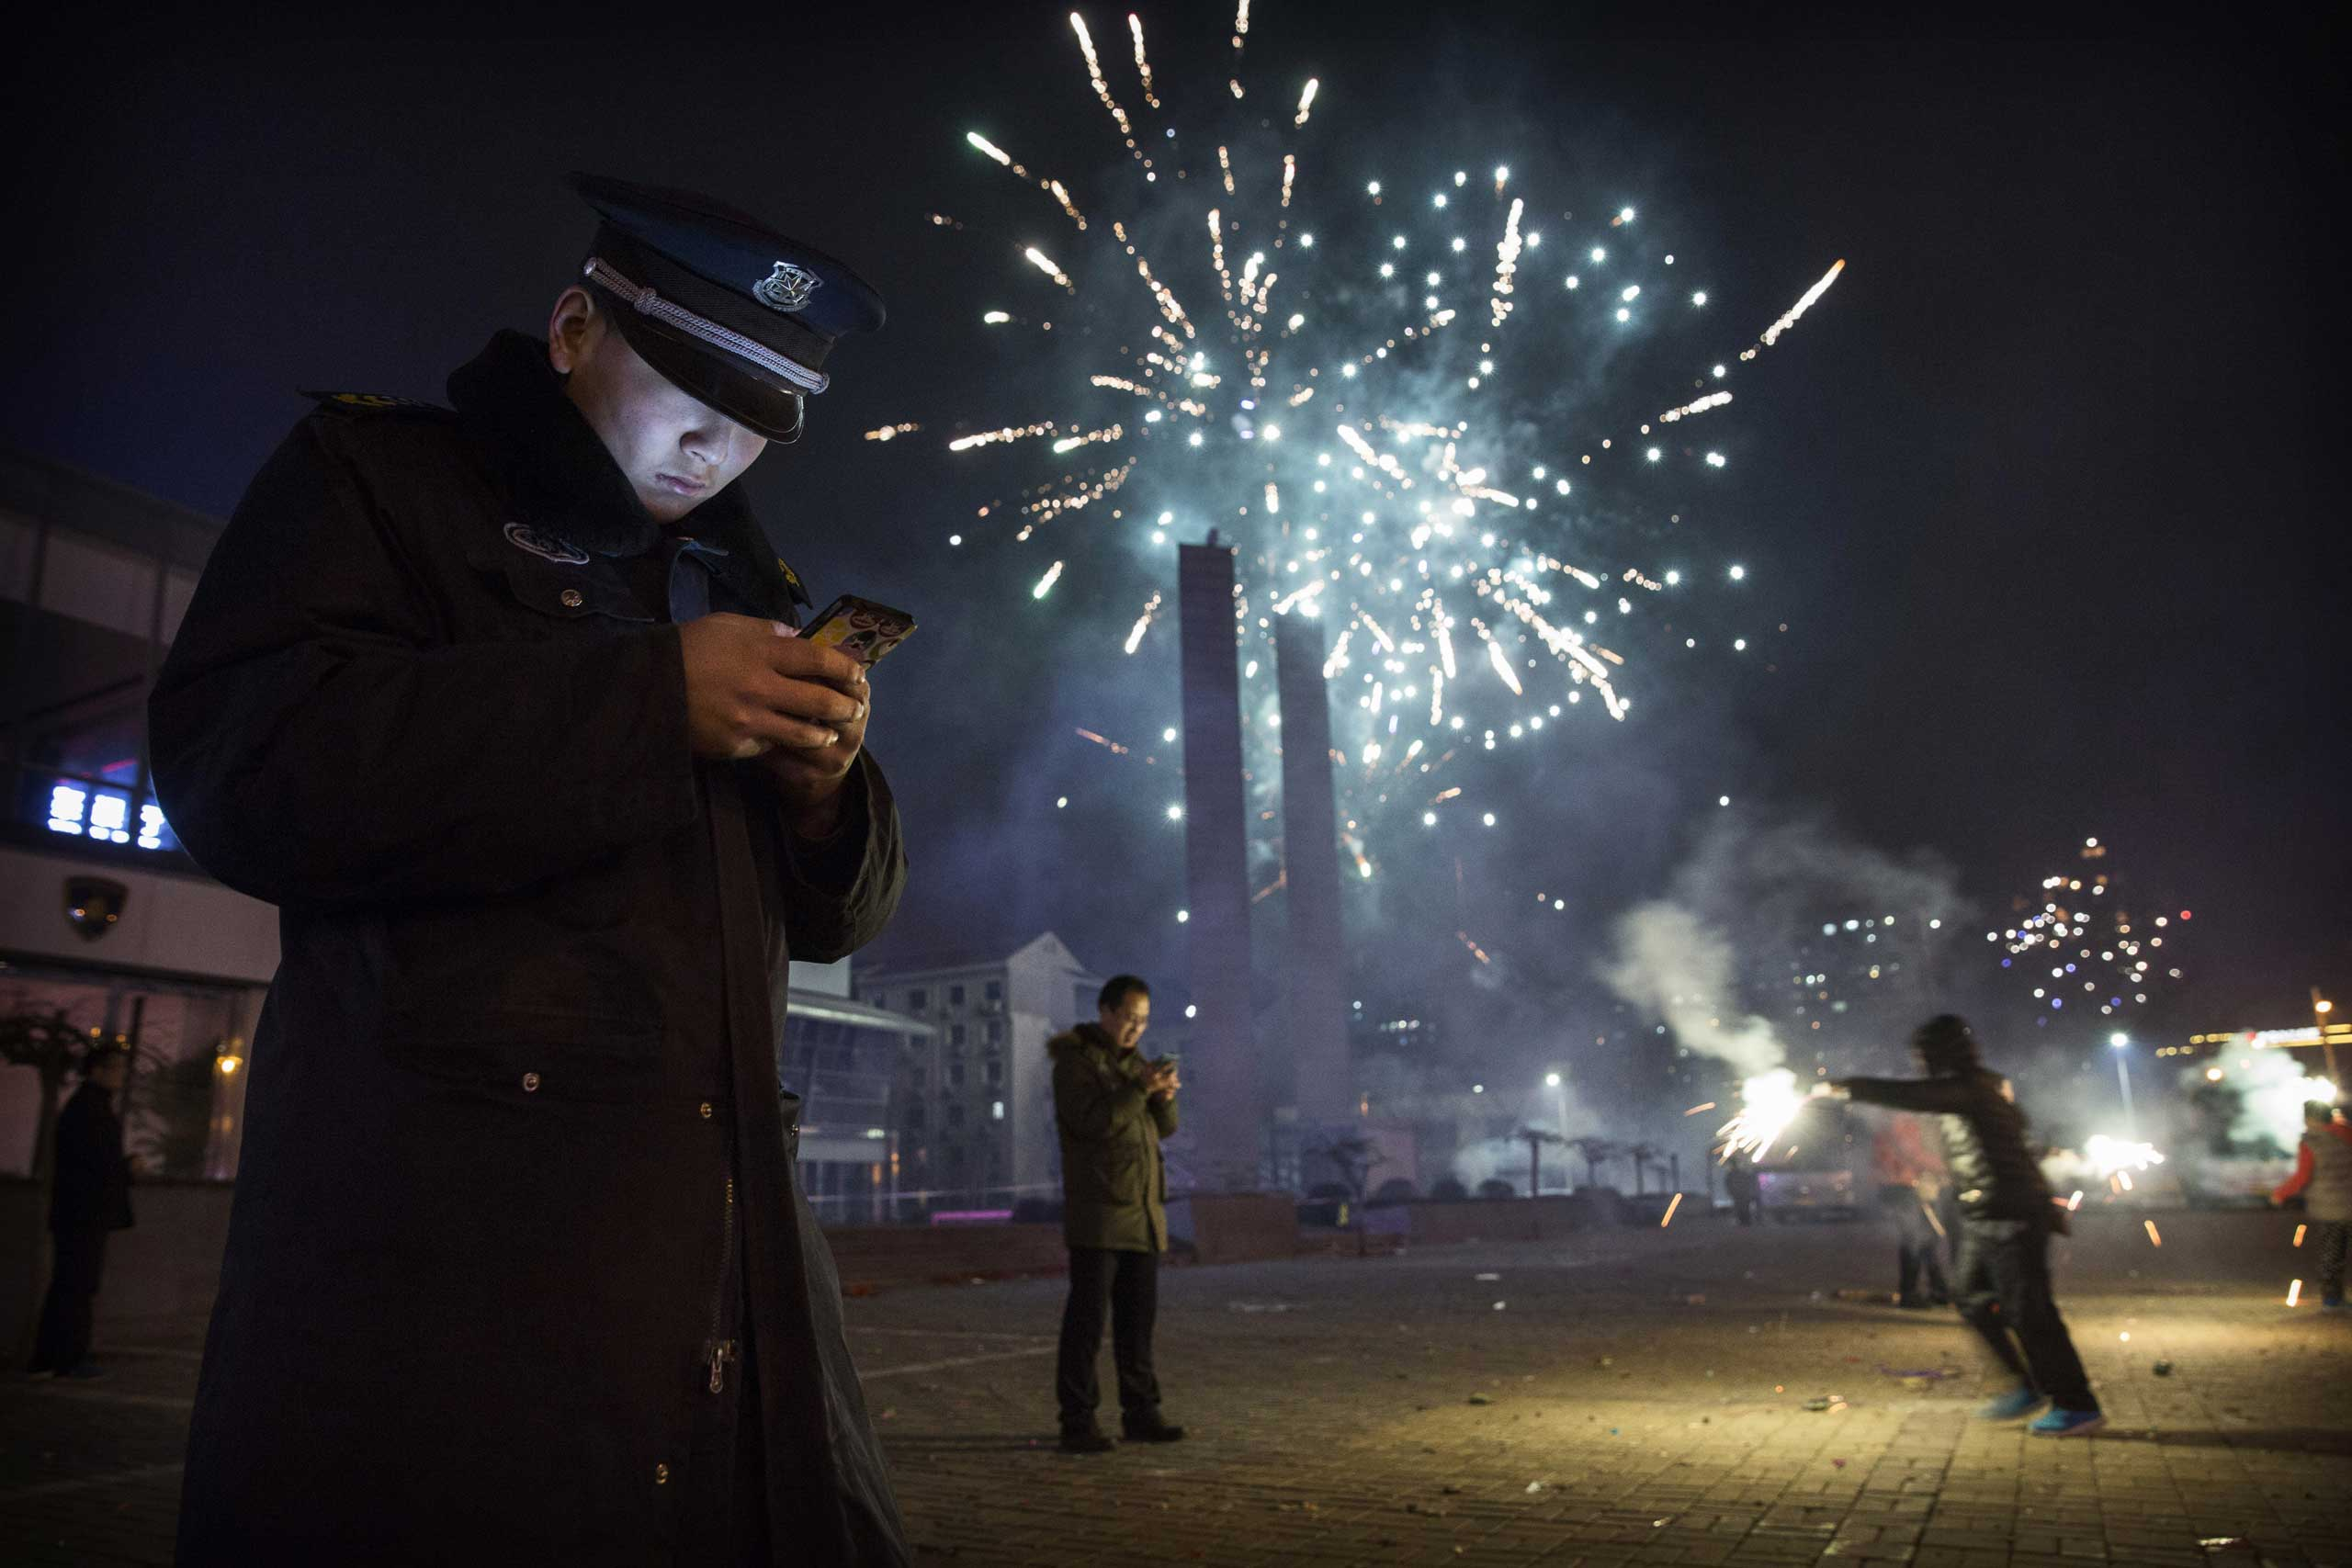 A security guard checks his smartphone as fireworks explode during celebrations of the Lunar New Year early on Feb. 19, 2015 in Beijing.